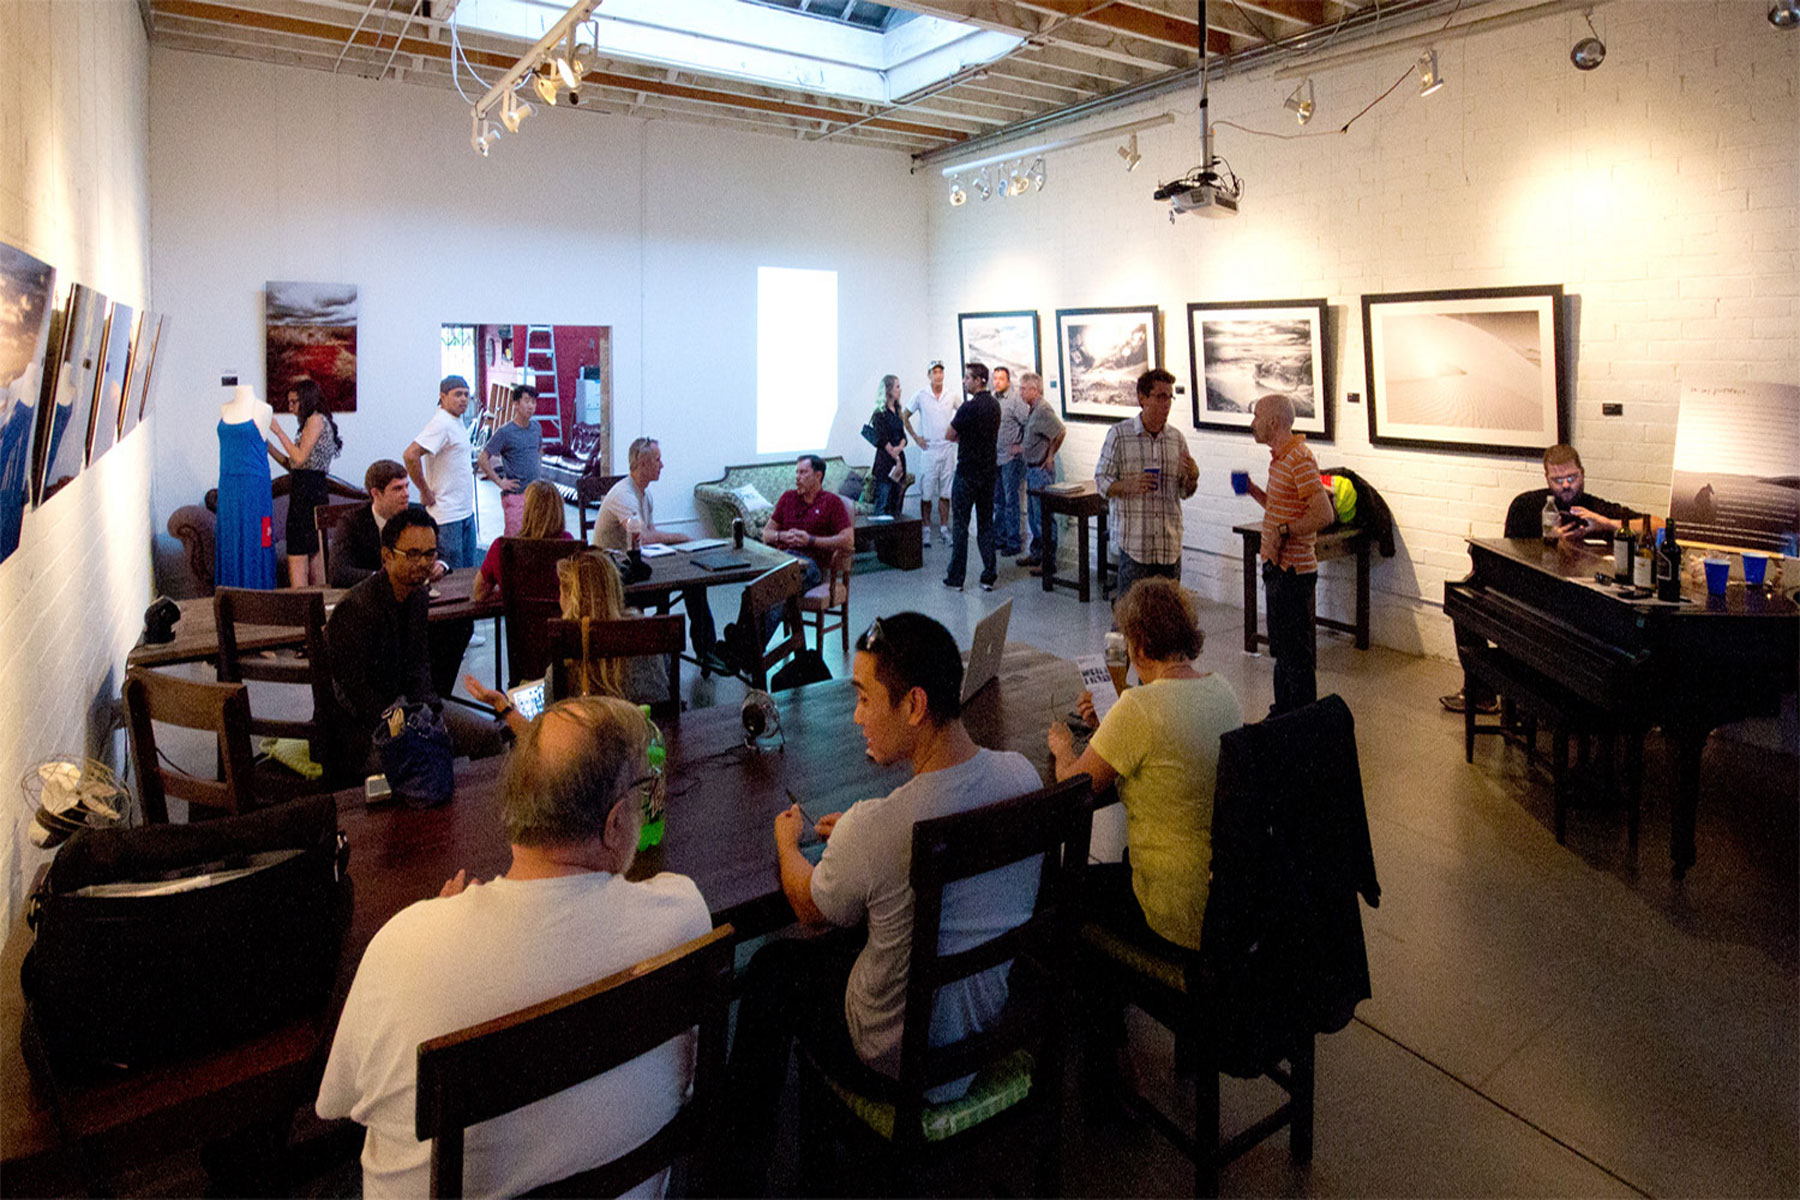 3rd Space host numerous performances and social events for its community.Photo: San Diego Coworking Association